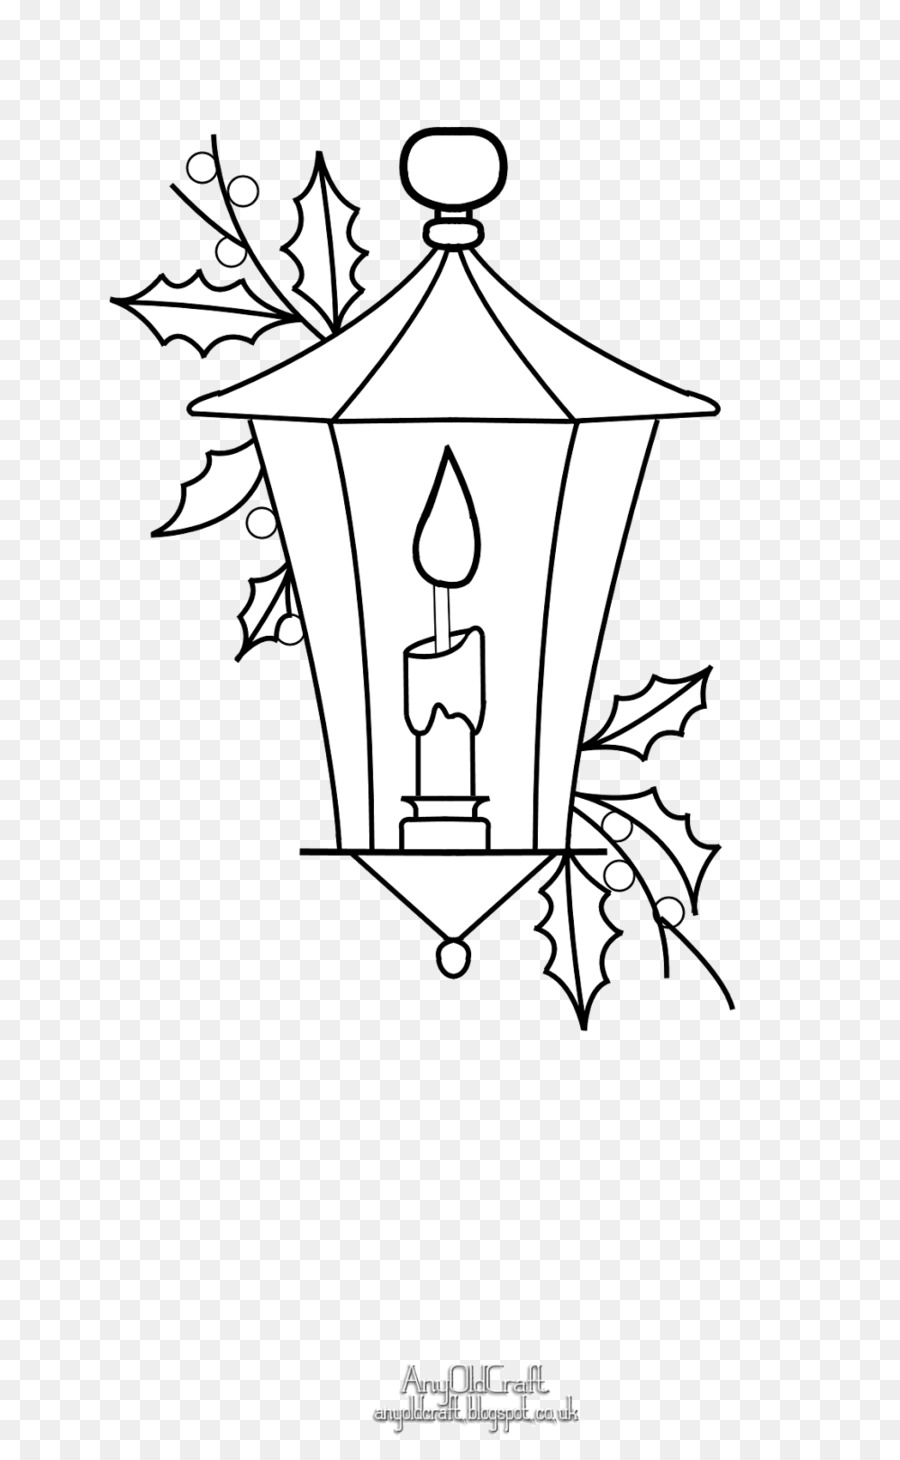 Drawing Tree Png Download 999 1600 Free Transparent Line Art Png Download Cleanpng Kisspng